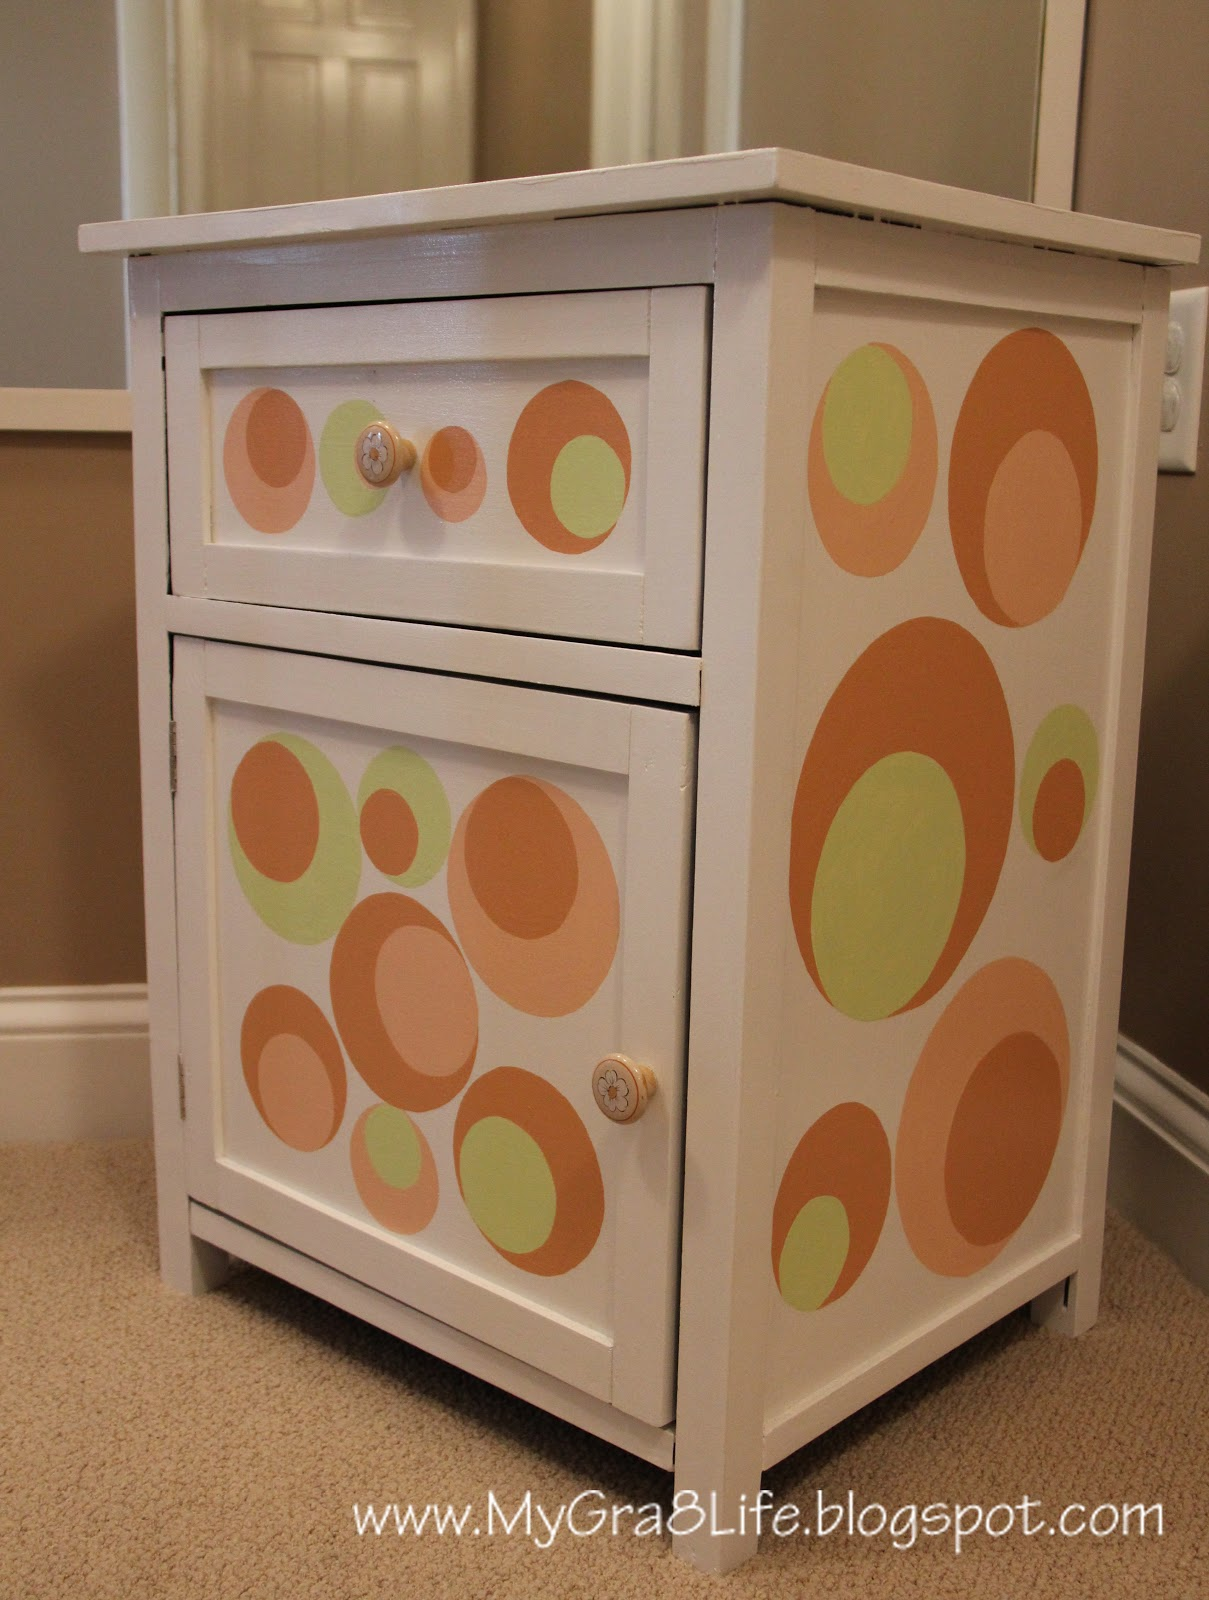 My Gra 8 Life: Painted Furniture - Fun & Classy! - Small Pieces Of Wooden Furniture